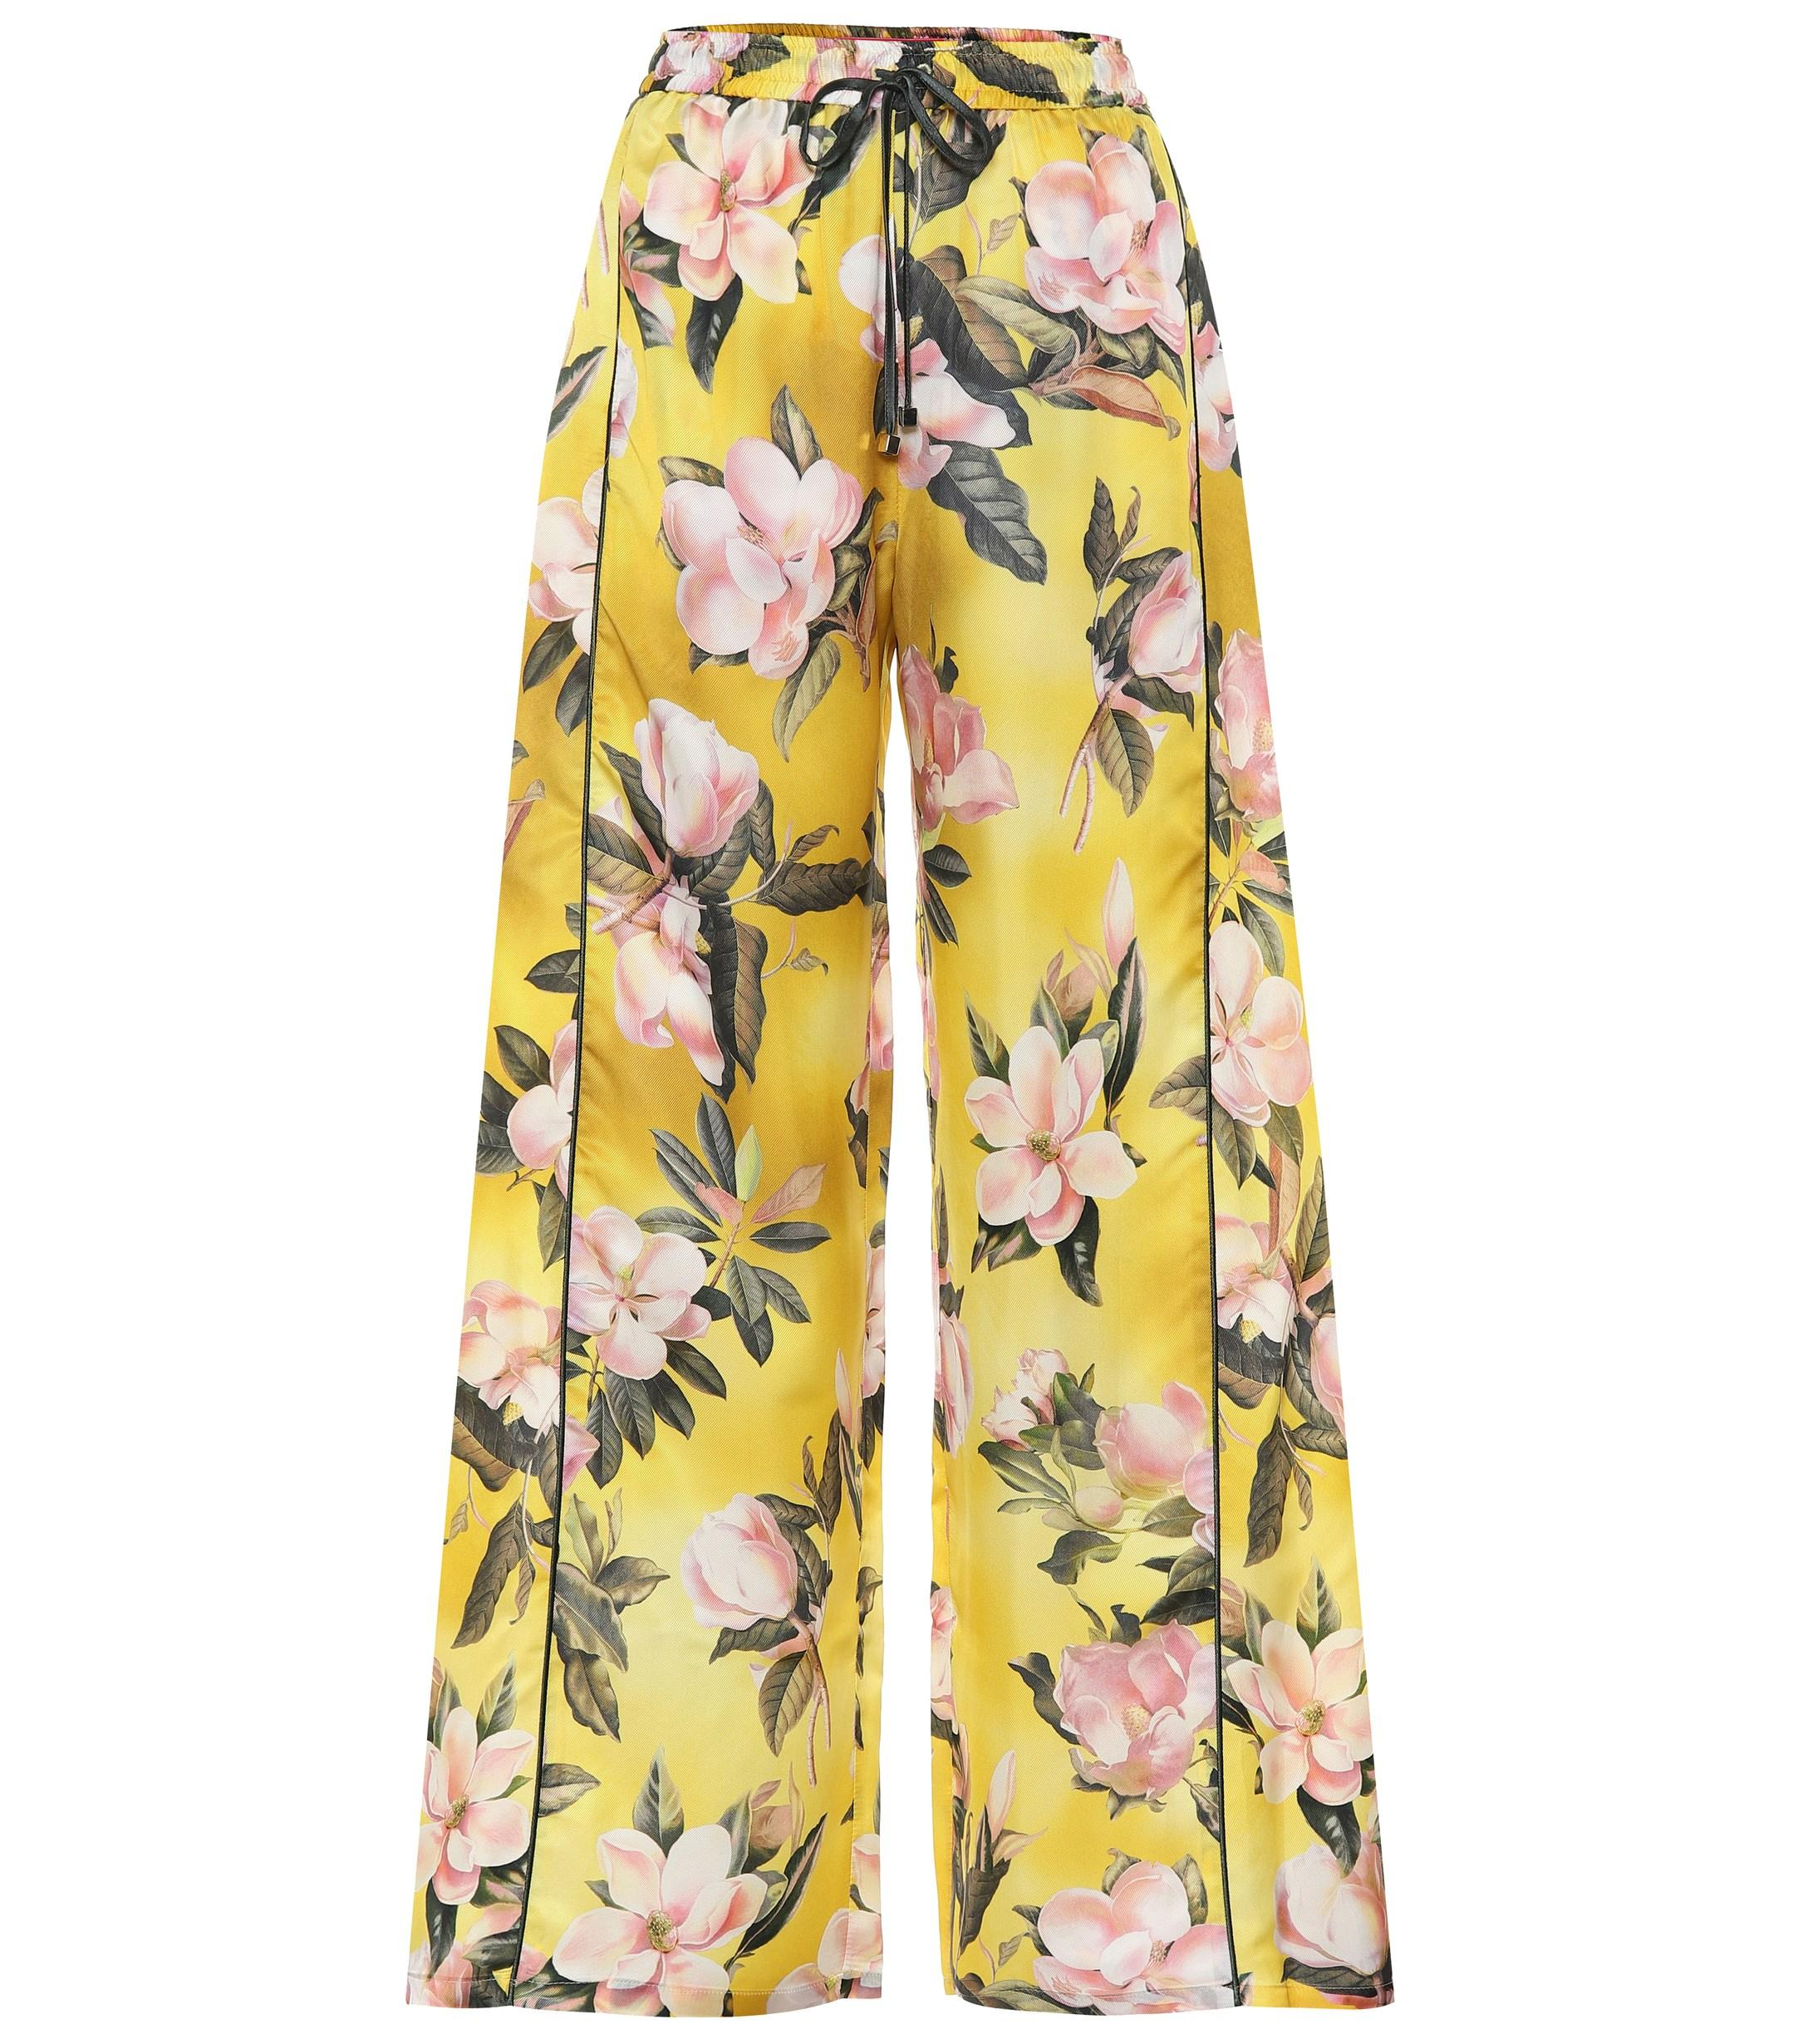 bd50d9e12 Lyst - F.R.S For Restless Sleepers Apate Satin Pajama Pants in Yellow